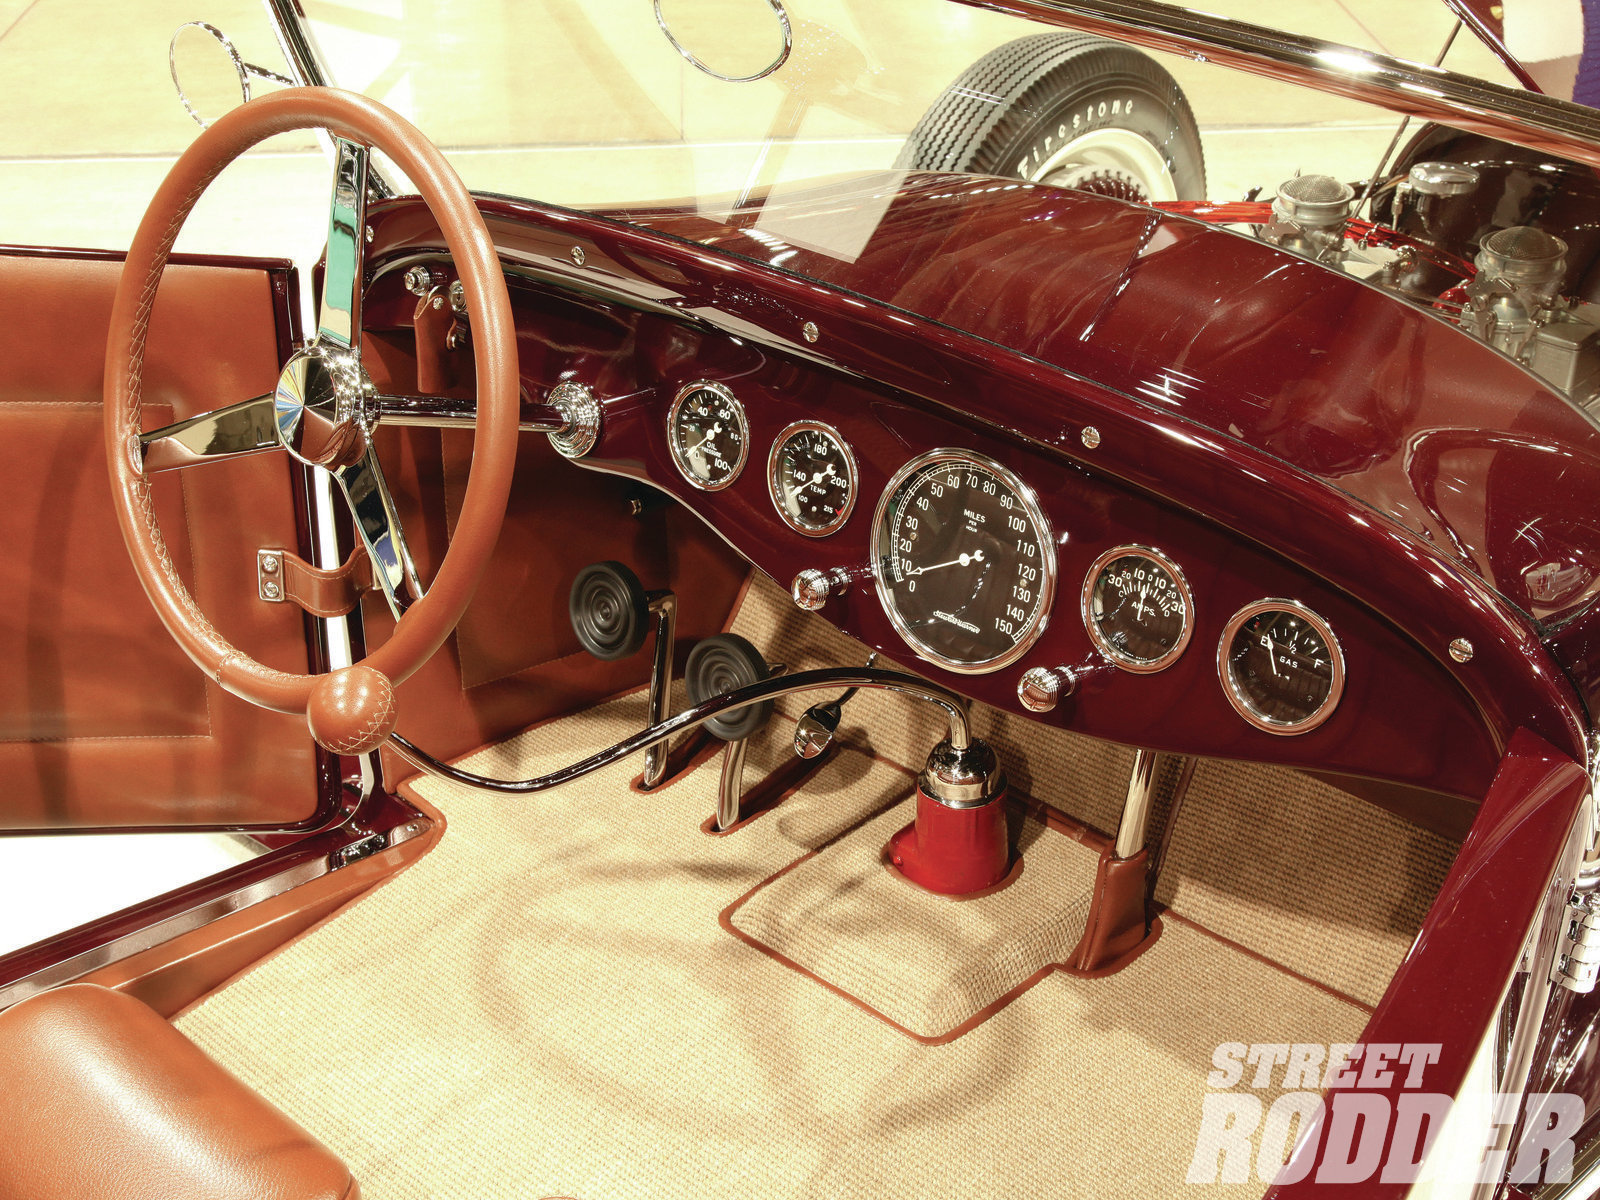 The original (restored) Stewart-Warner gauges positioning within the custom dash were determined by the steering column placement. While offset from what we might expect the gauge placement is both functional and appealing.